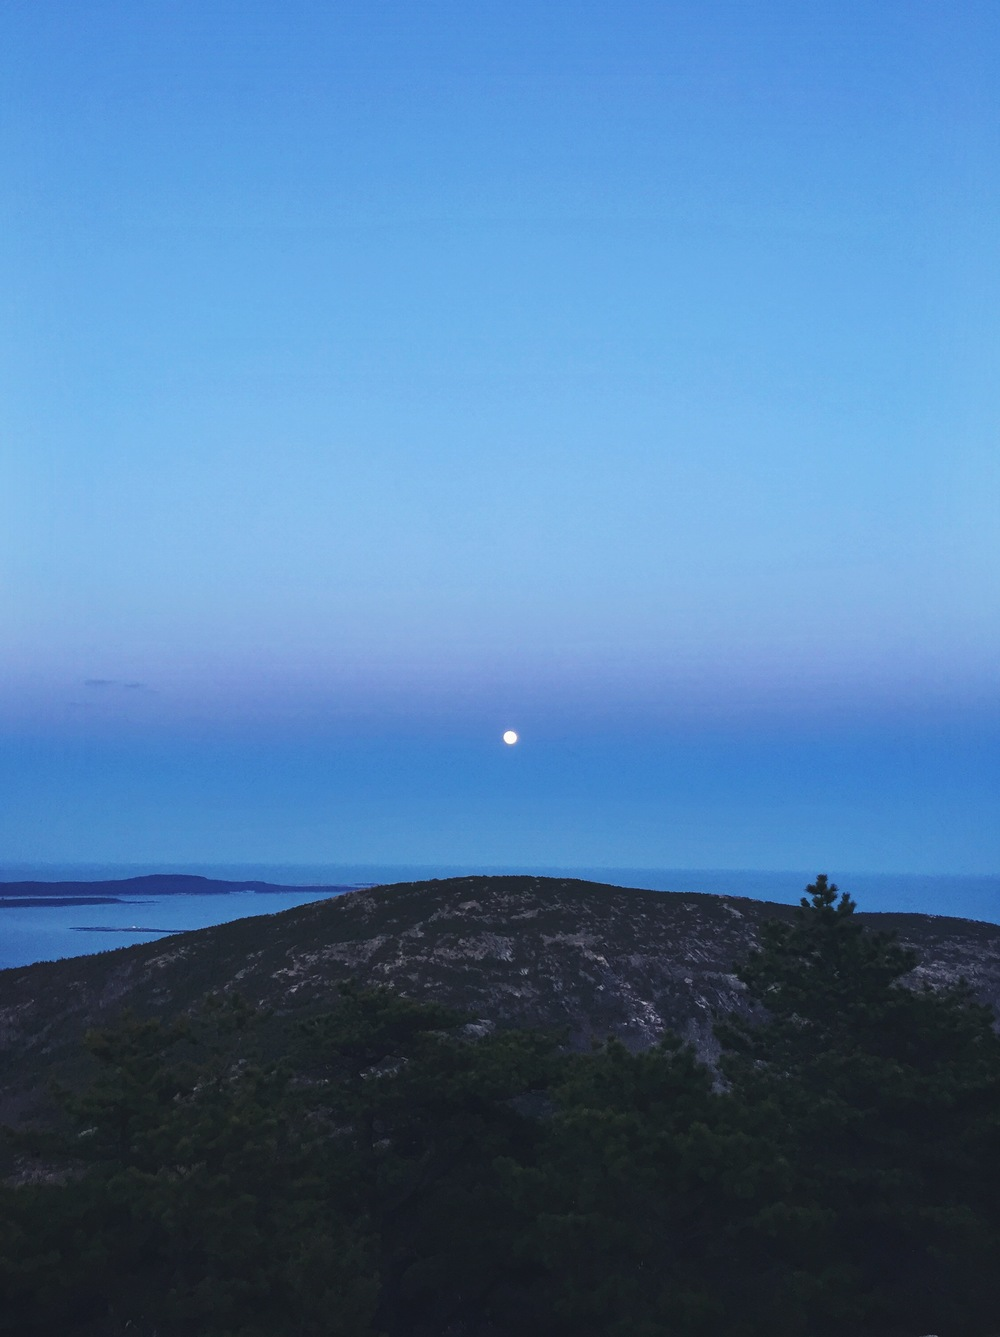 A full moon certainly aids in a night hike descent.